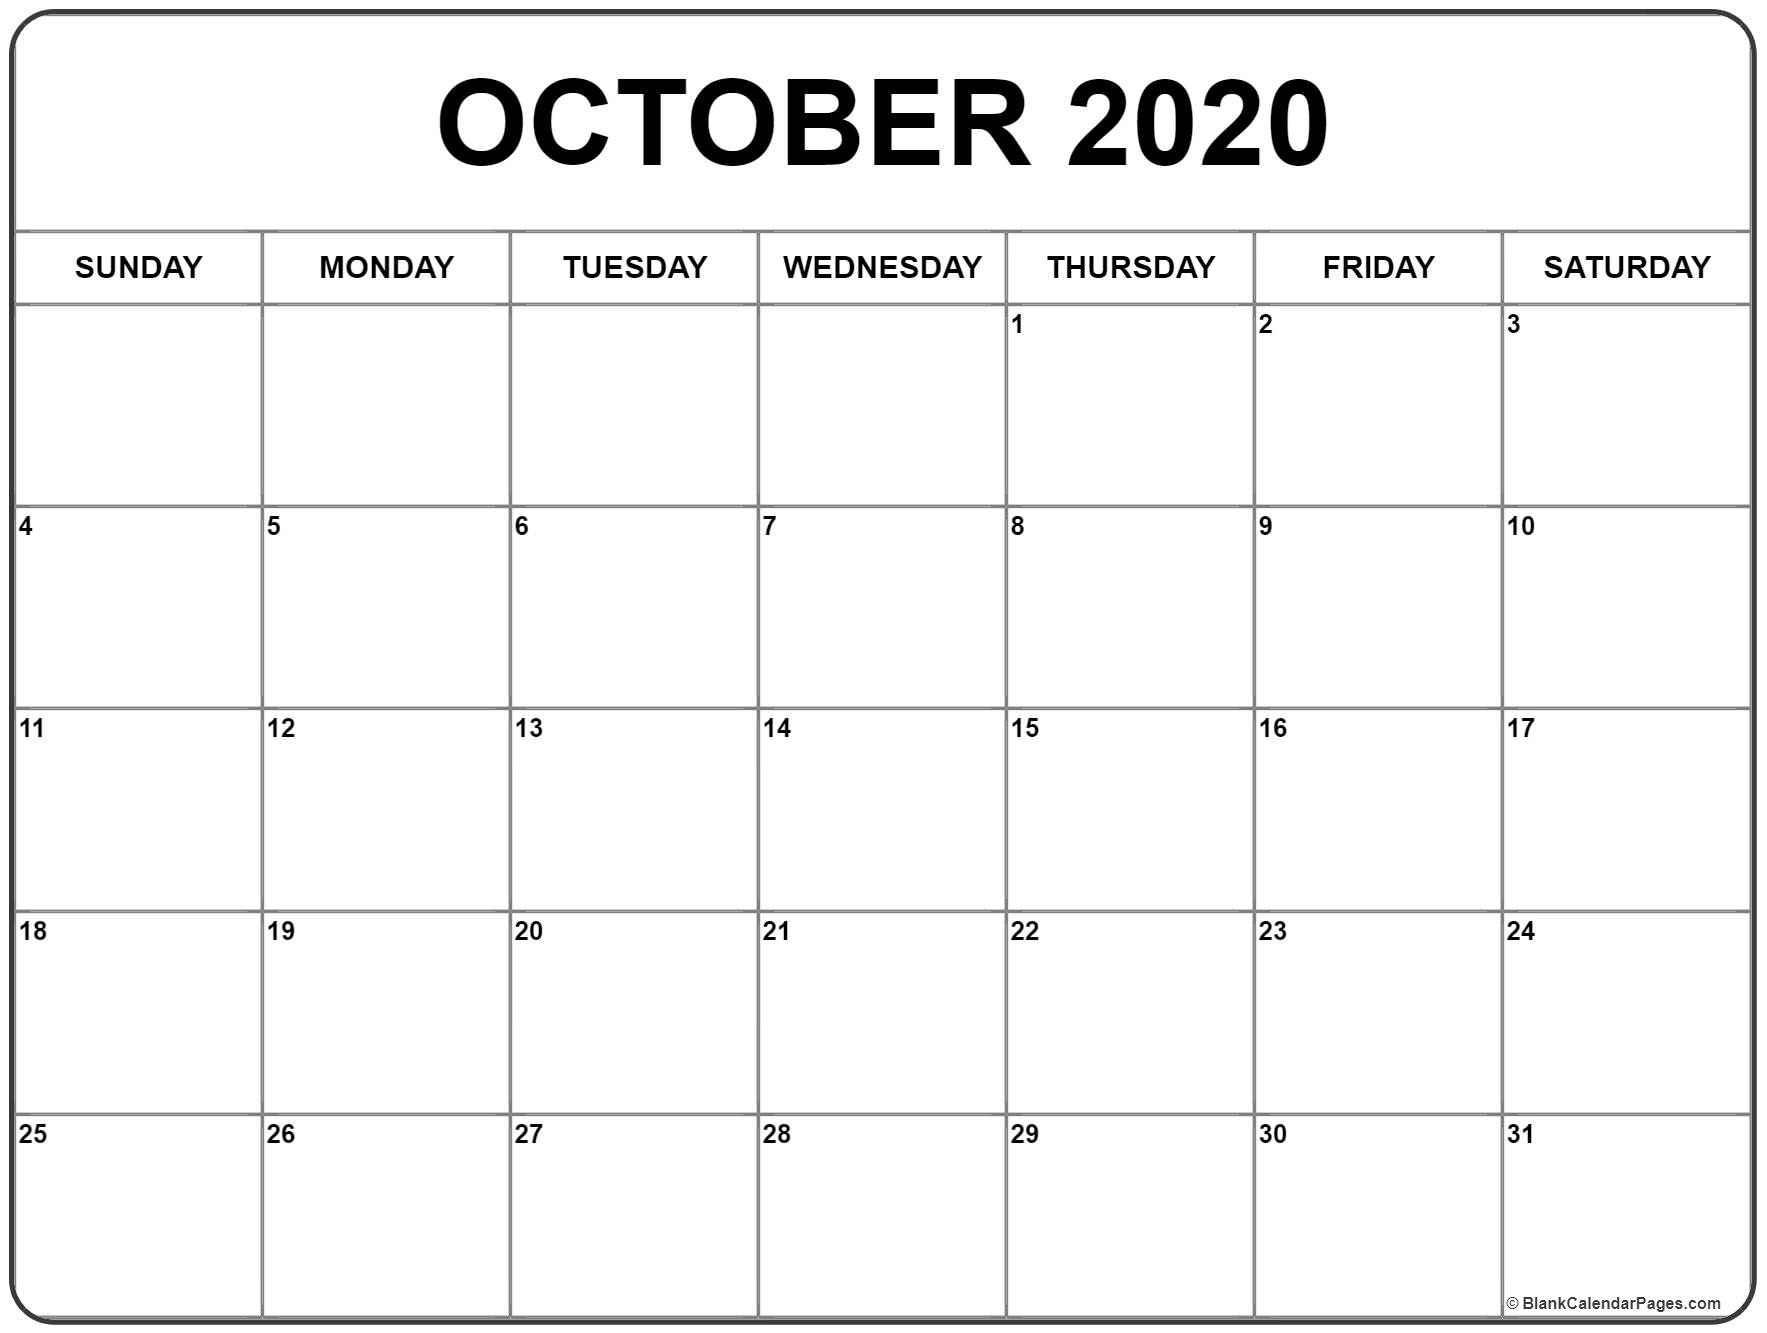 October 2020 Calendar | Free Printable Monthly Calendars-Blank Calendar October 2020 Printable